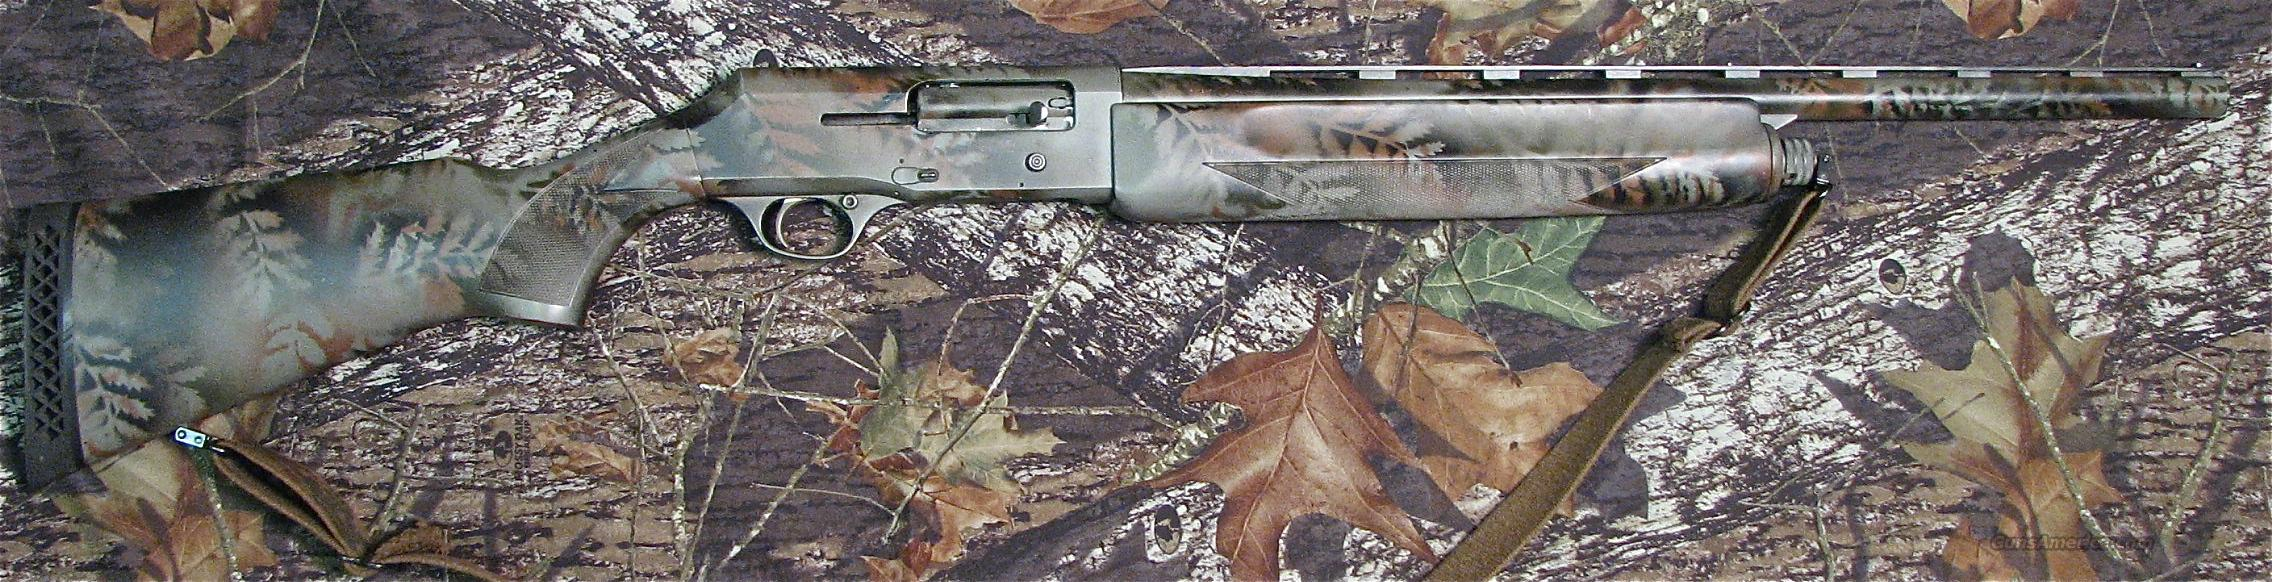 Custom Browning B80 20ga Turkey Gun  Guns > Shotguns > Browning Shotguns > Autoloaders > Hunting